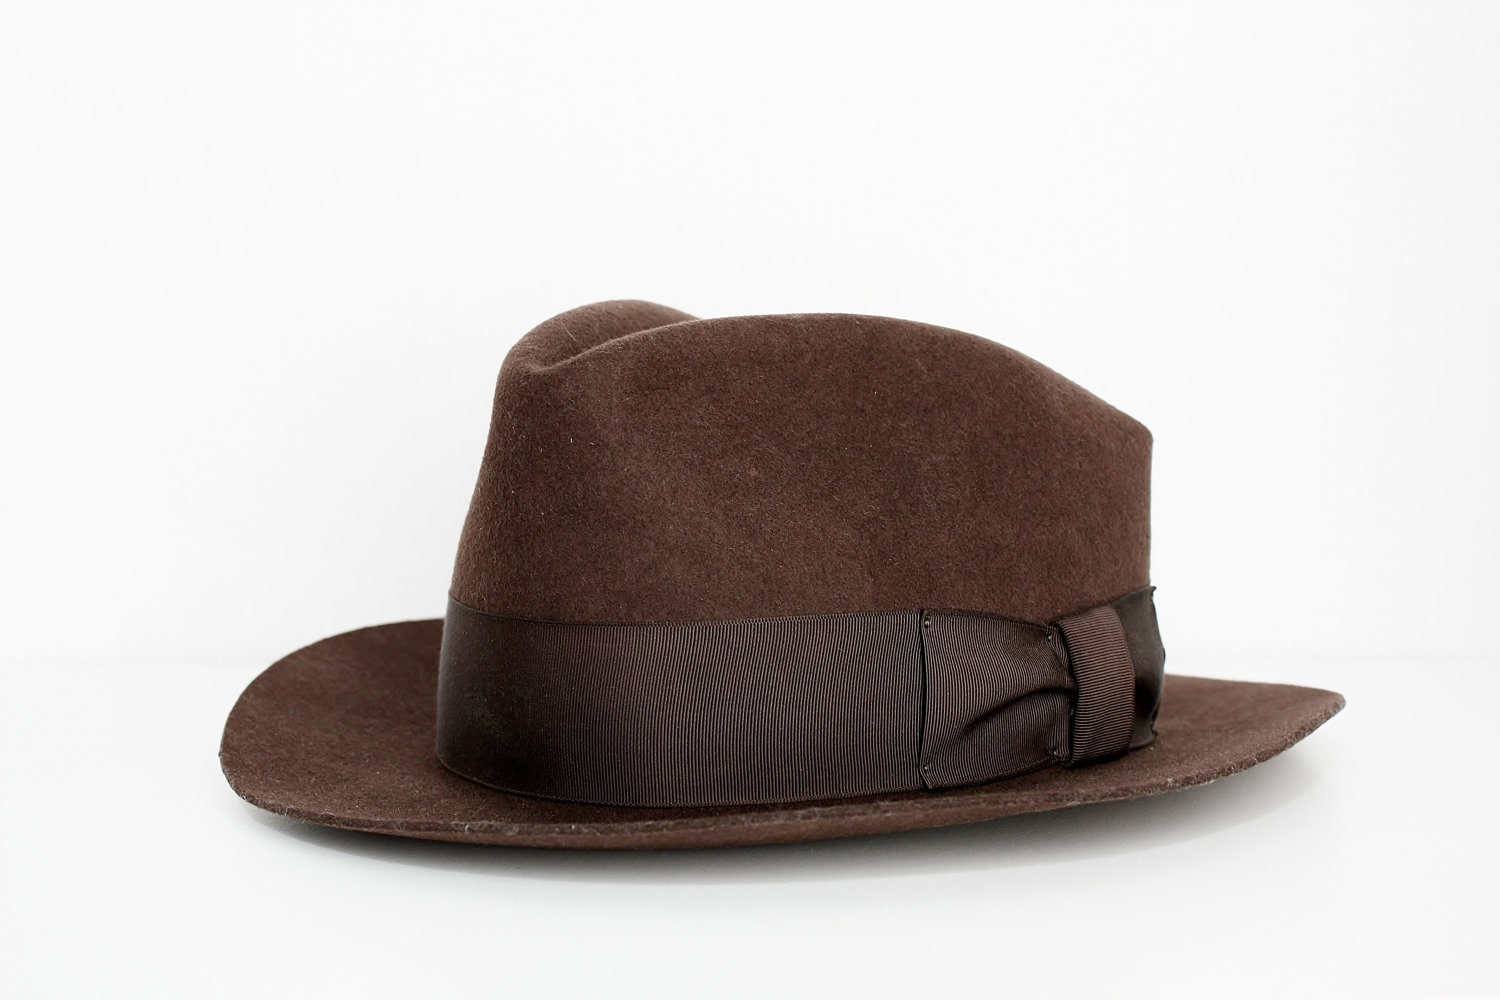 16837faf966 Vintage Dark Brown Fedora Hat Country Gentleman